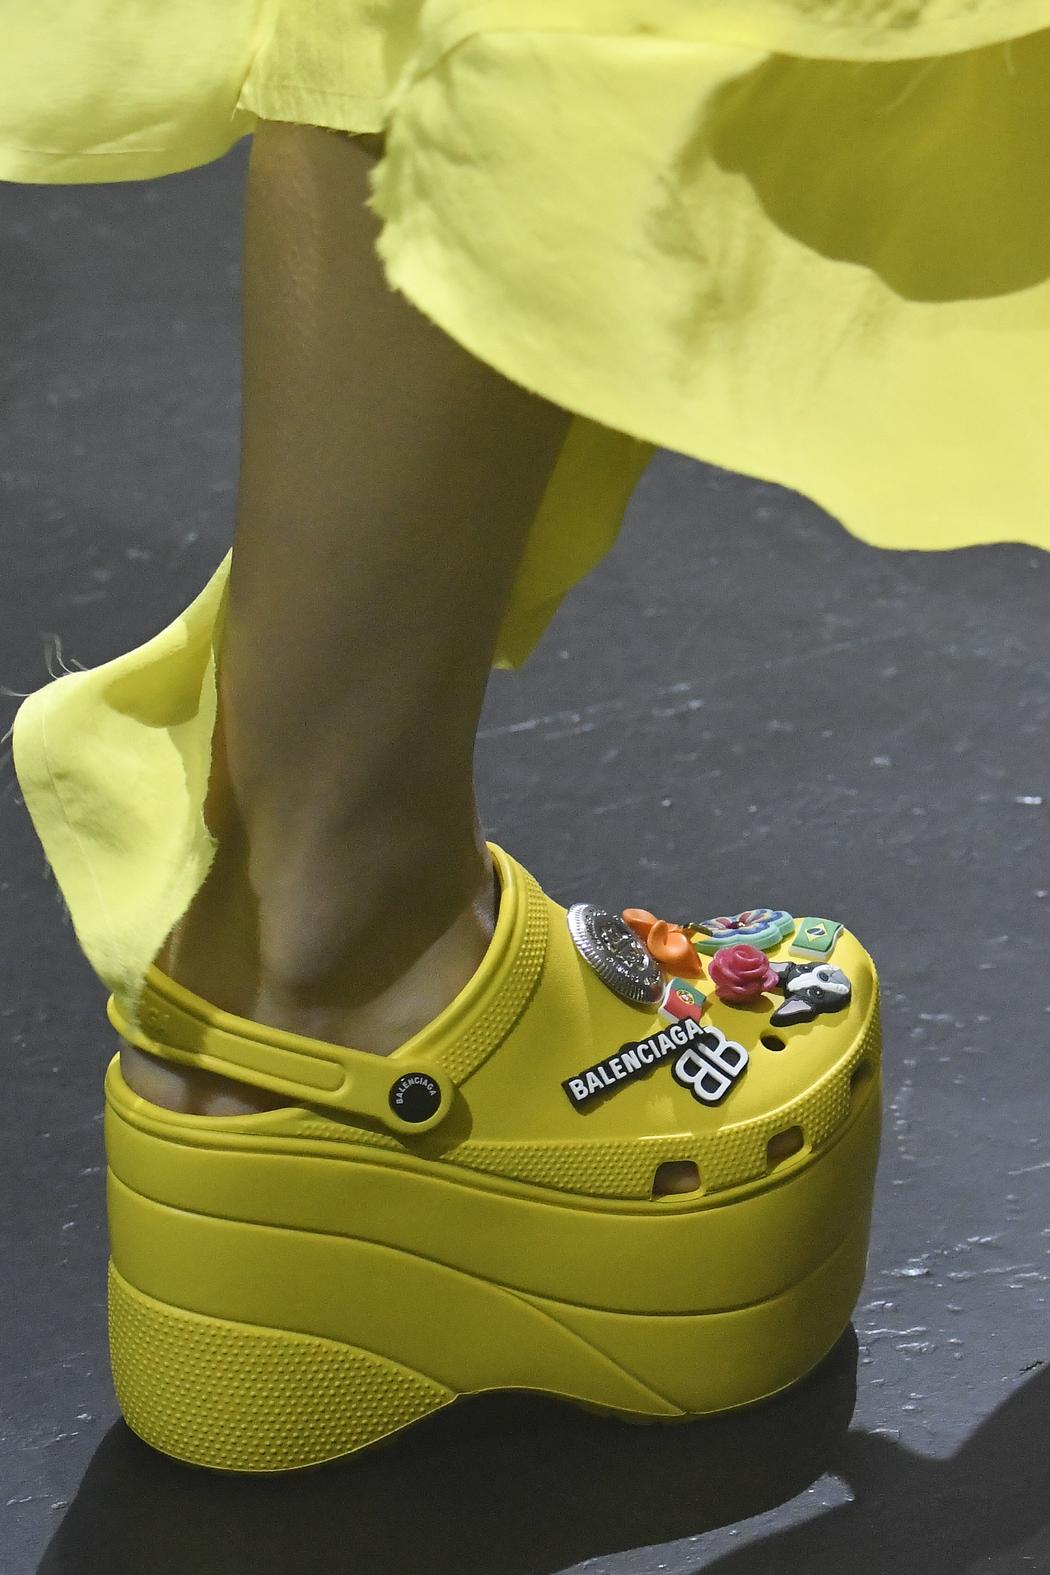 144cb2383d5 Balenciaga Brings Us Closer to Heaven With a Pair of Platform Crocs ...